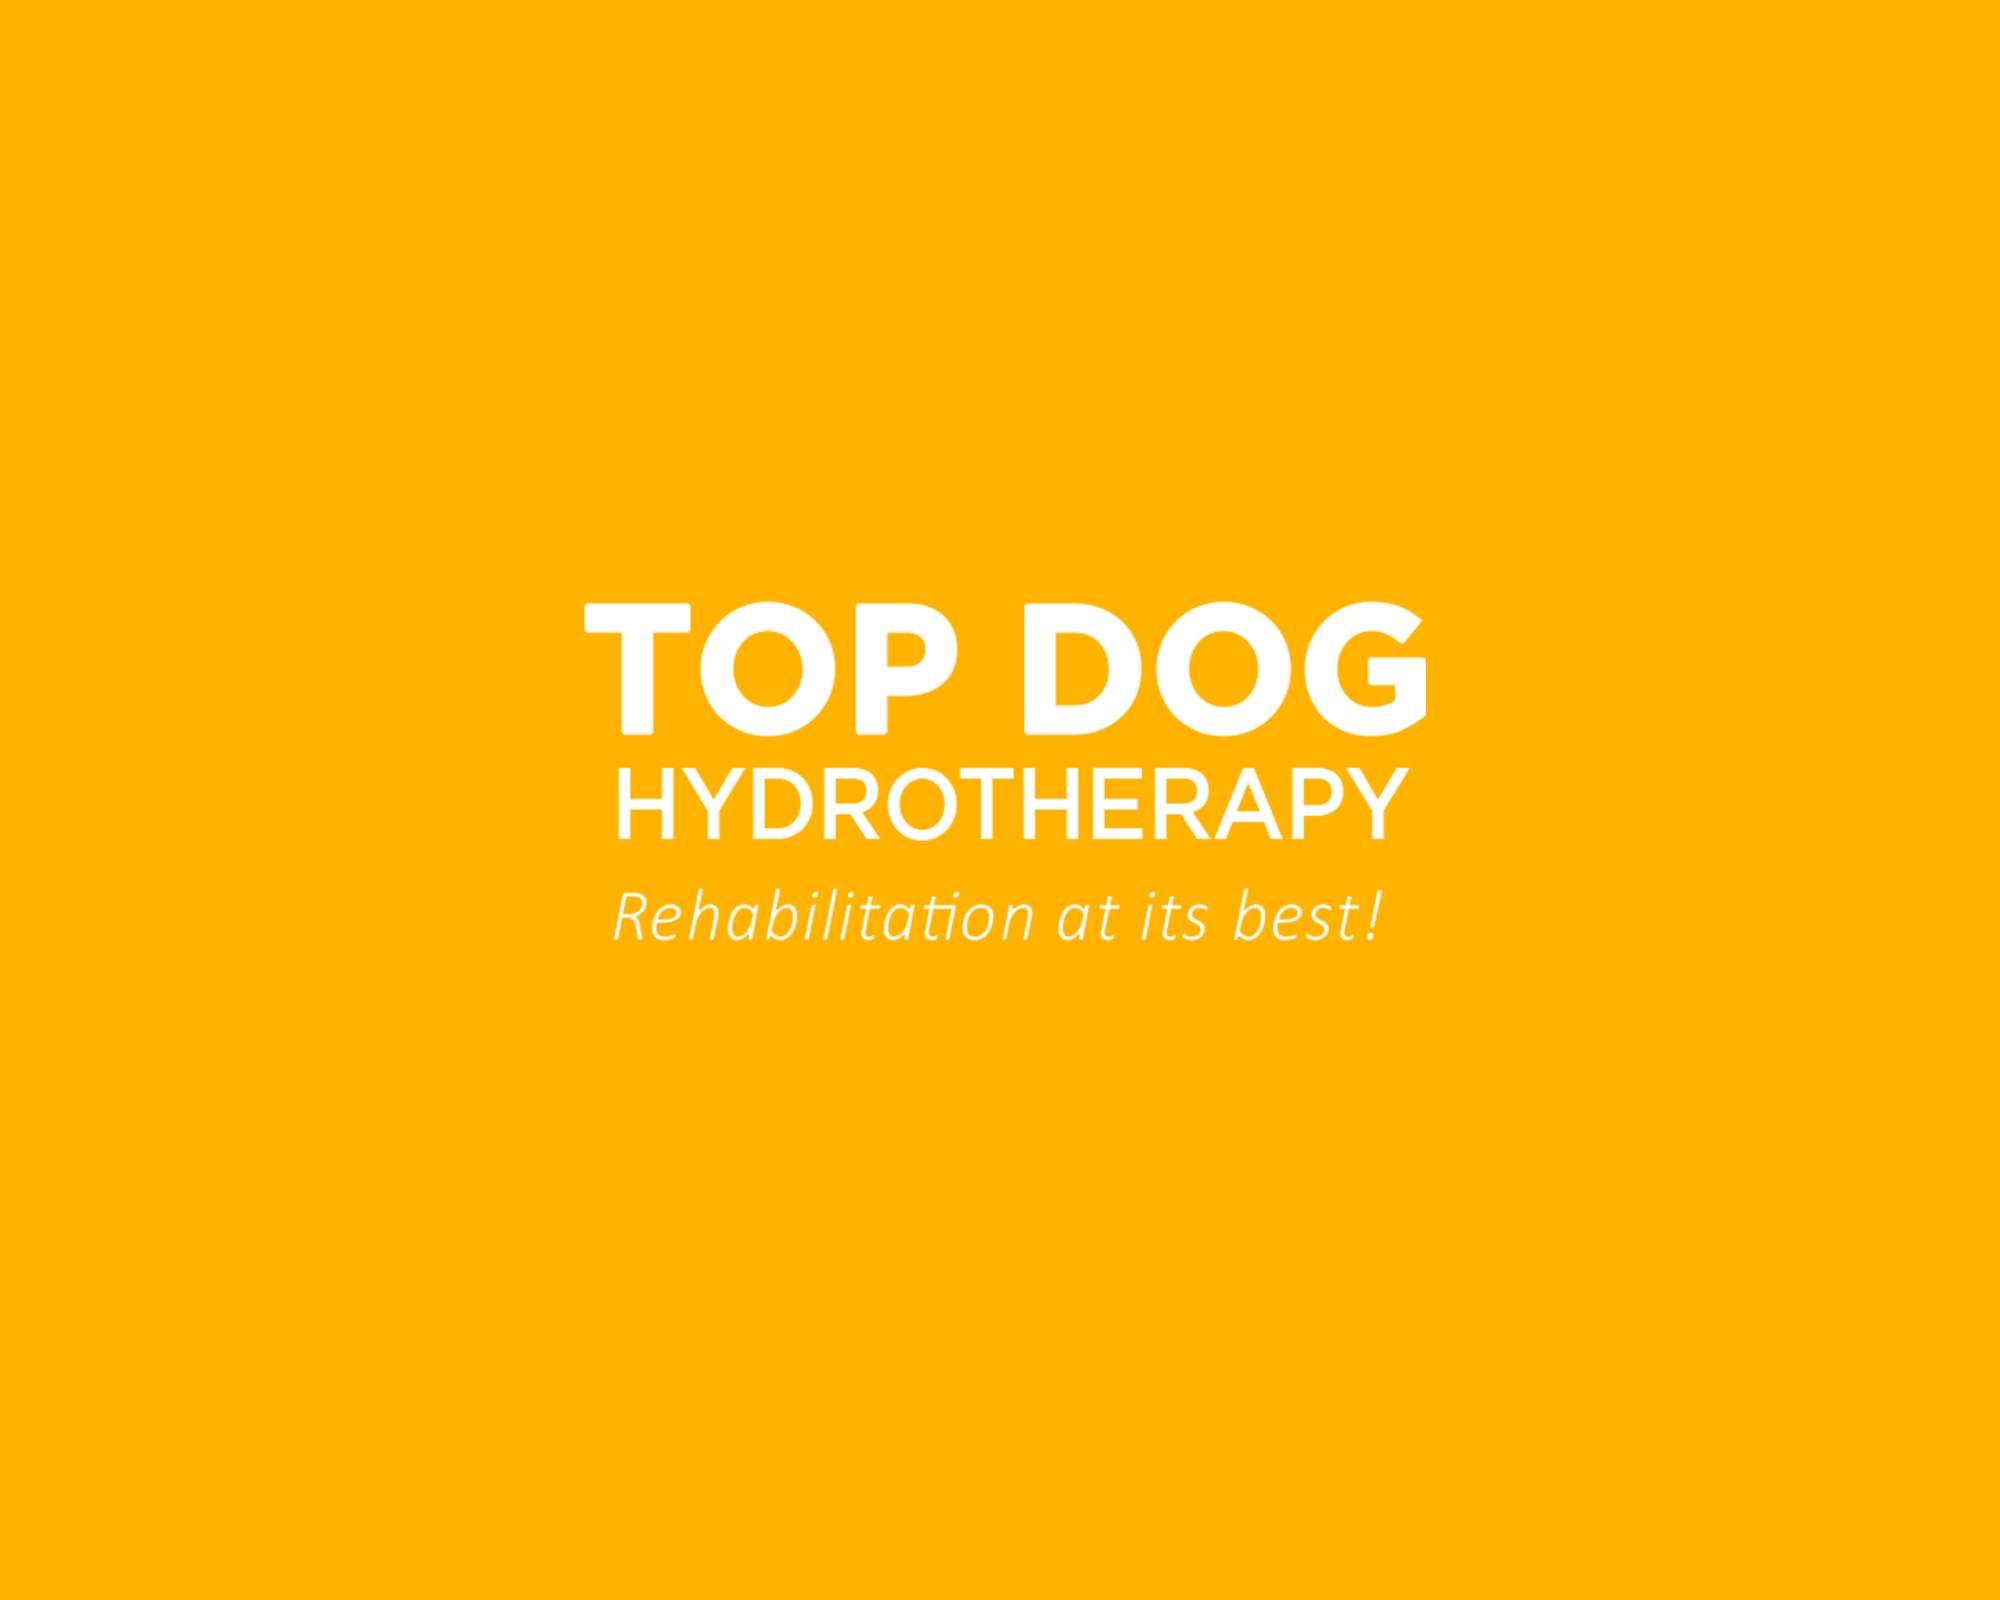 top dog hydrotherapy Logo